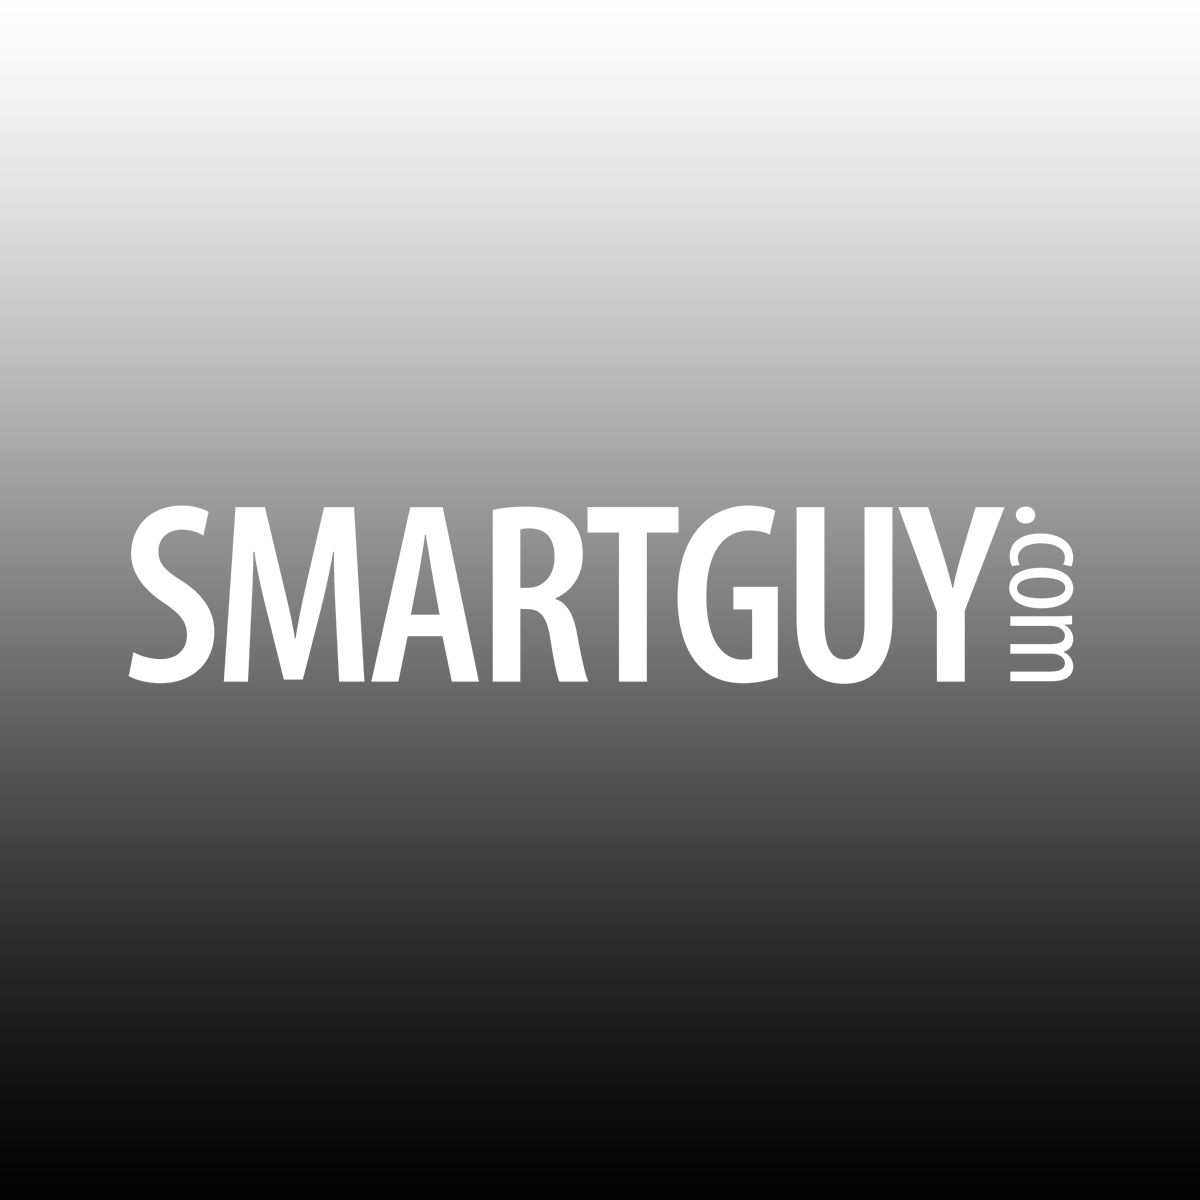 SmartGuy800 continues its rapid growth